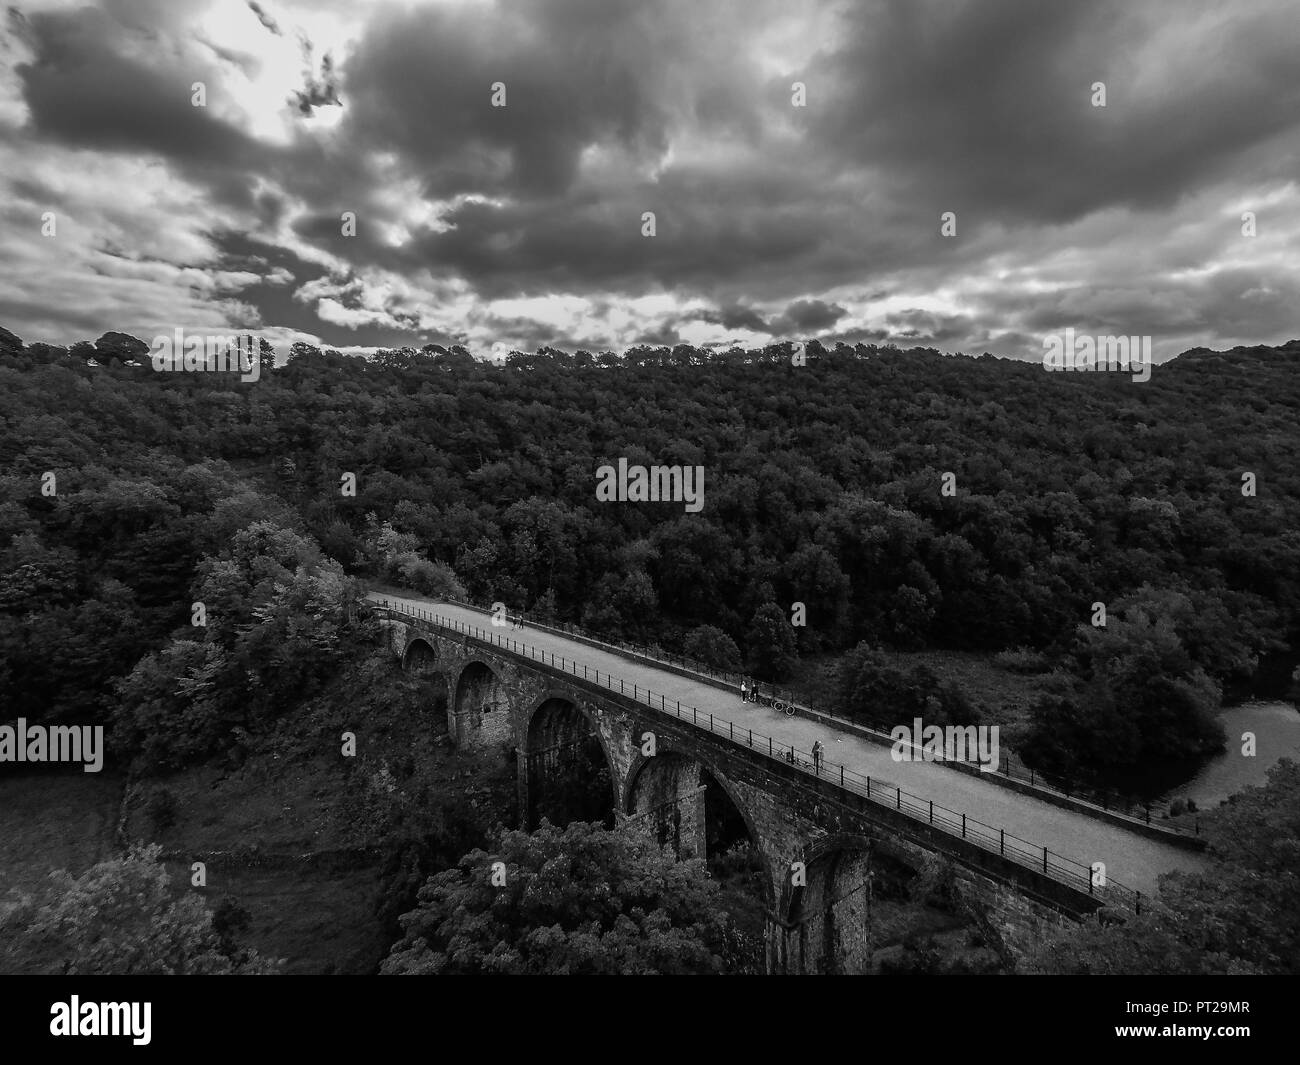 Bakewell, Derbyshire Peak District National Park, the Monsal Trail, Headstone Viaduct, Image 29, Aerial Landscape - Stock Image